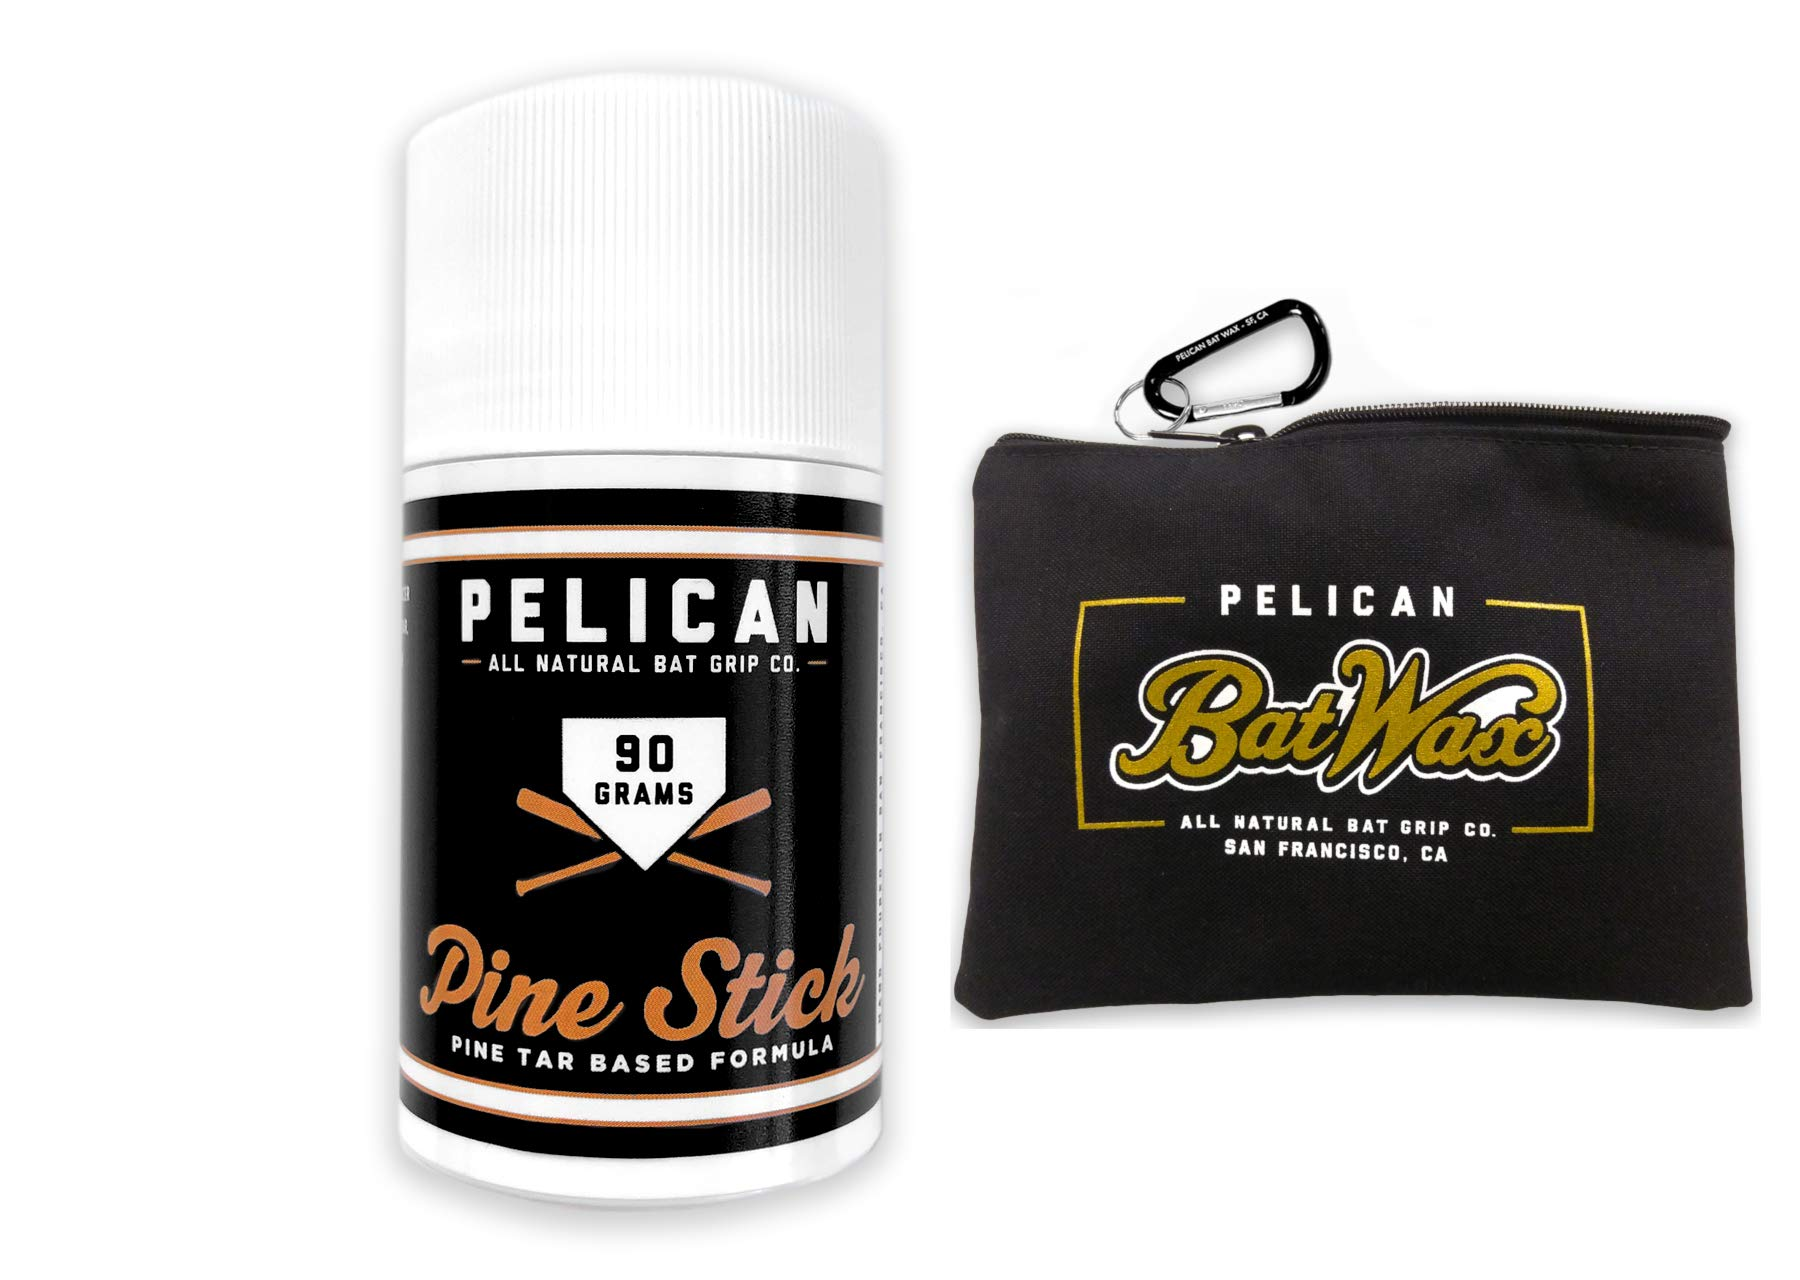 Pine Tar Pine Stick 90 Grams for Better Baseball Grip Comes with a Storage Bag by Pelican